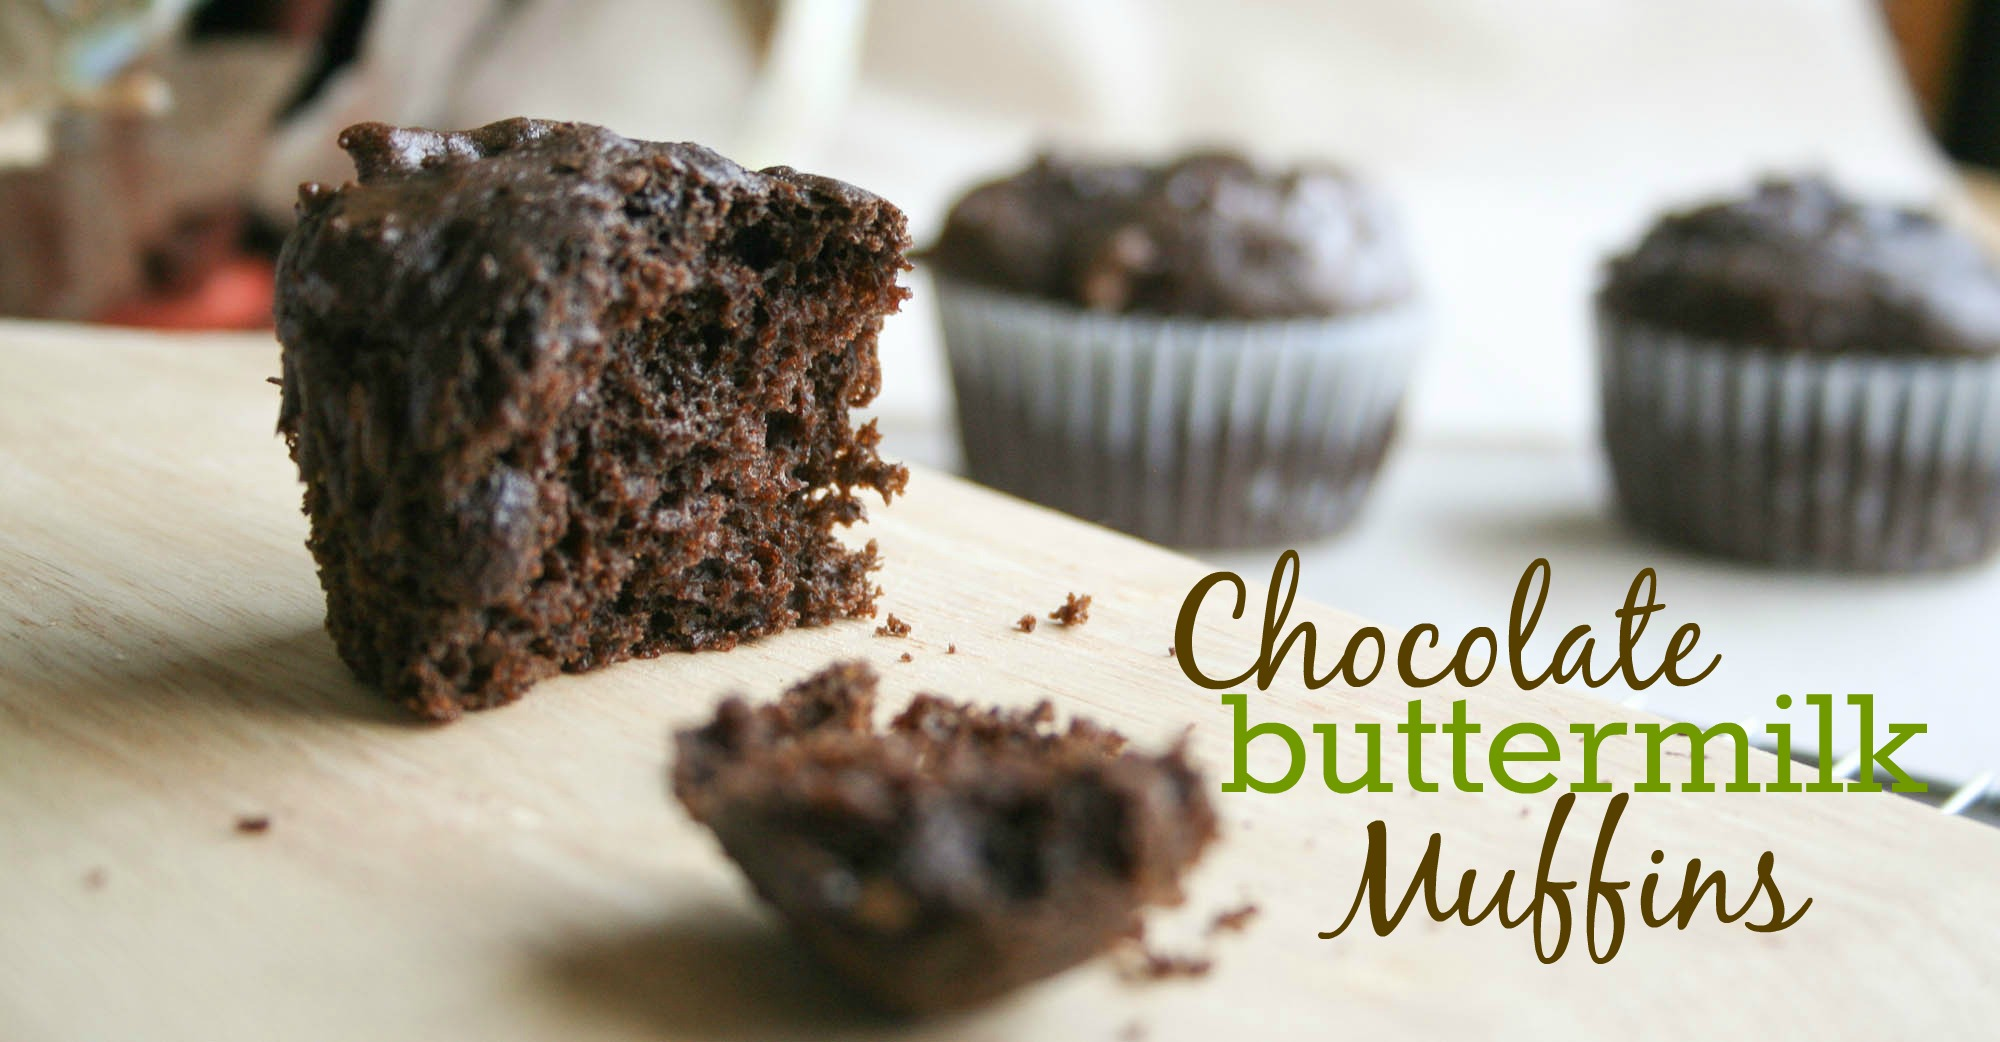 chocolate-buttermilk-muffins-1b